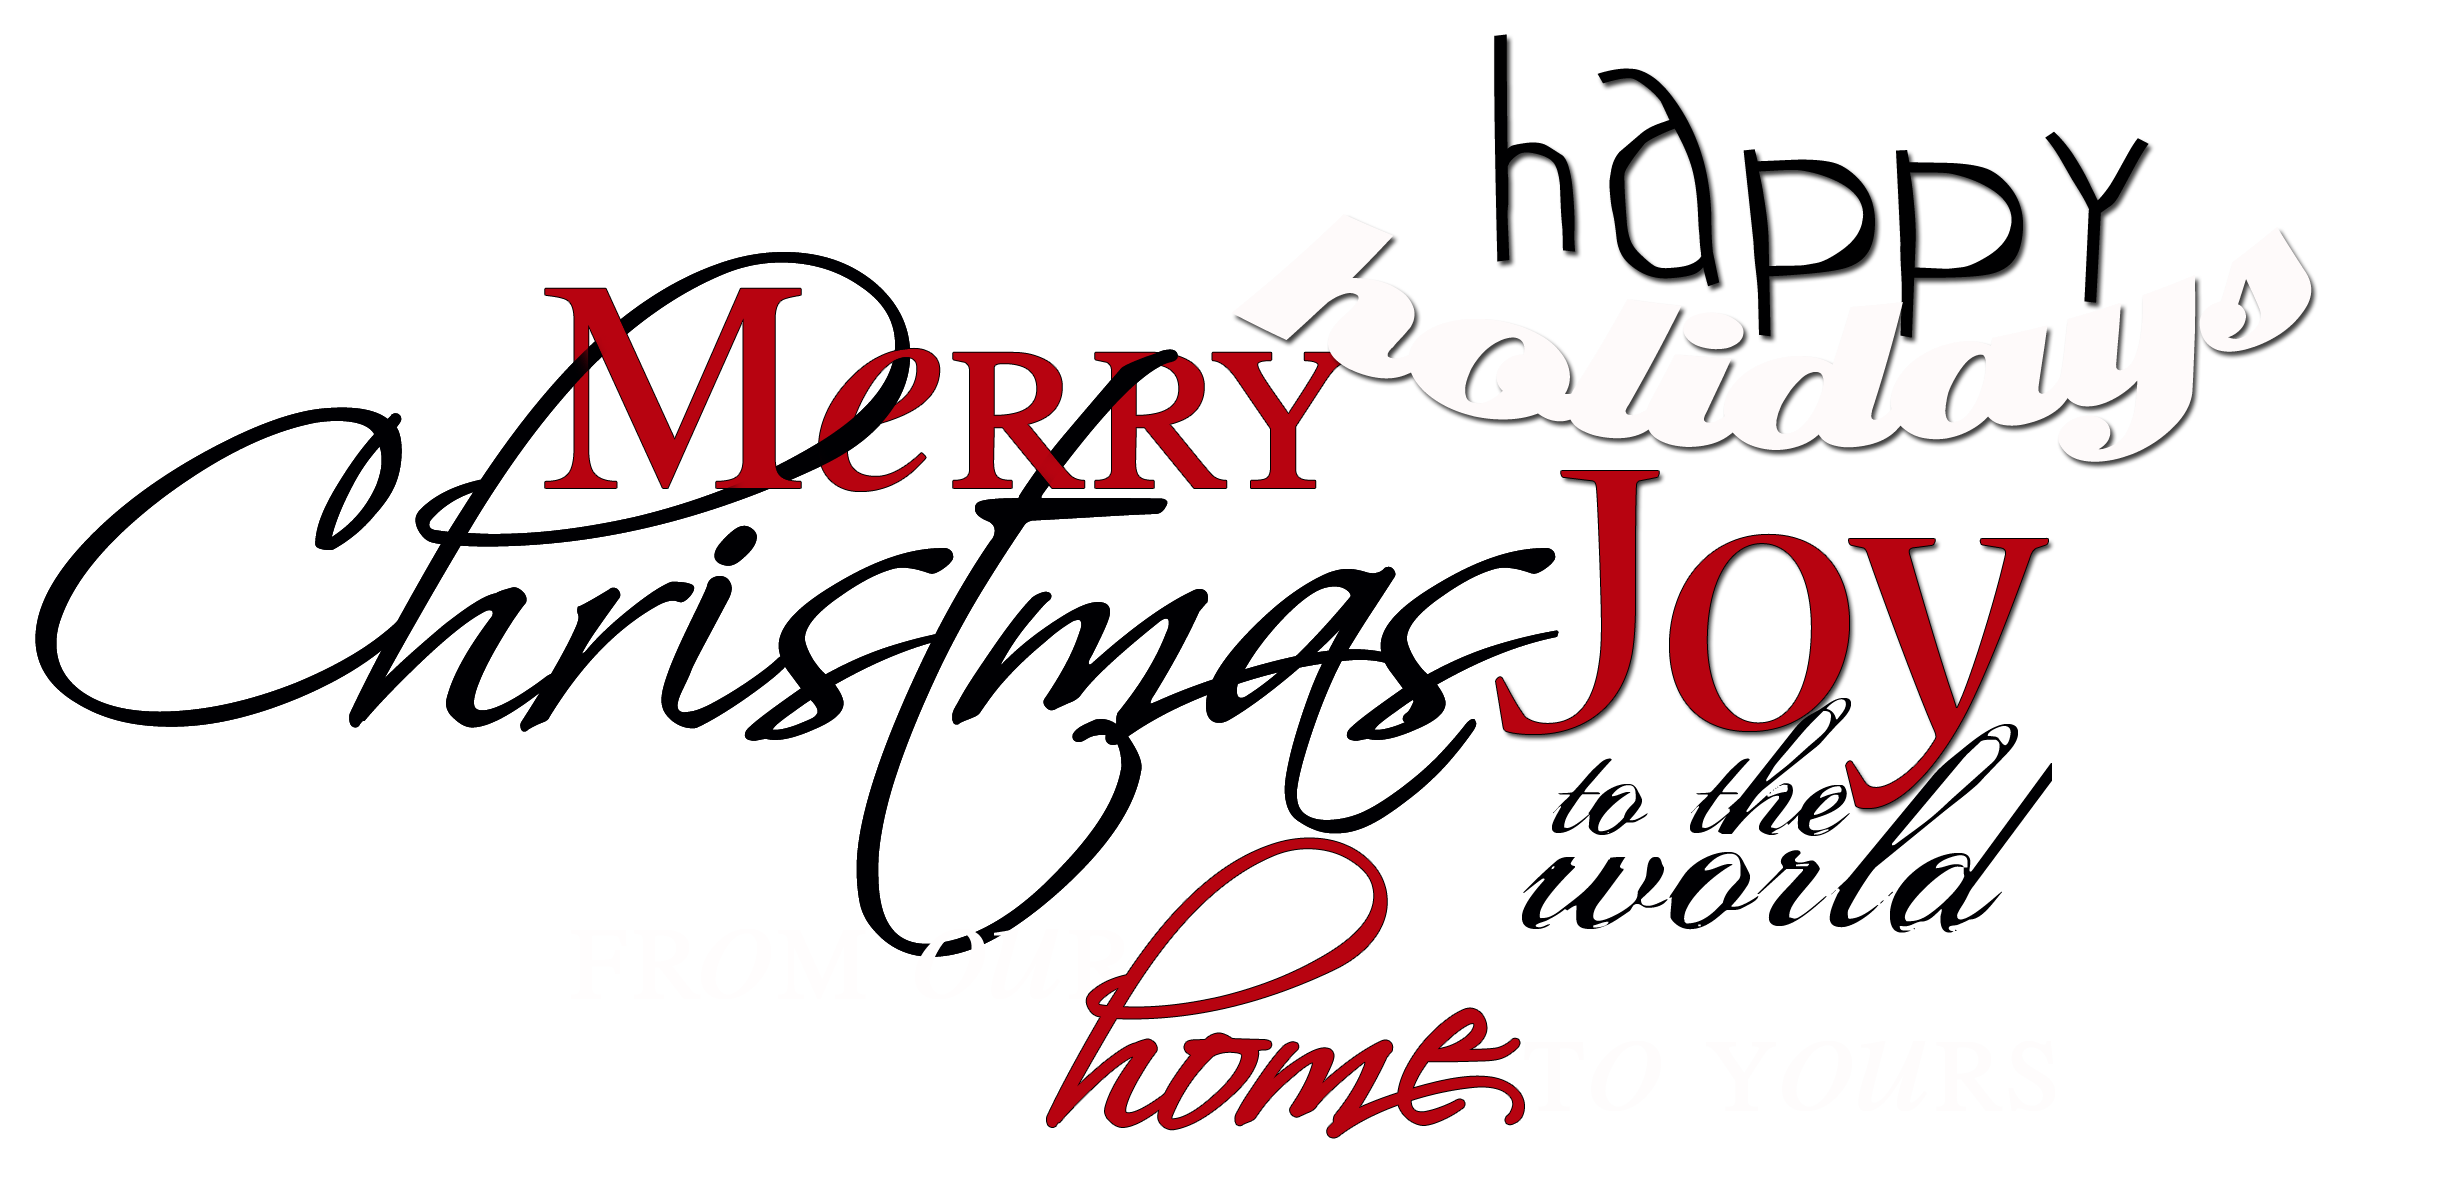 Word art png. For christmas cards your